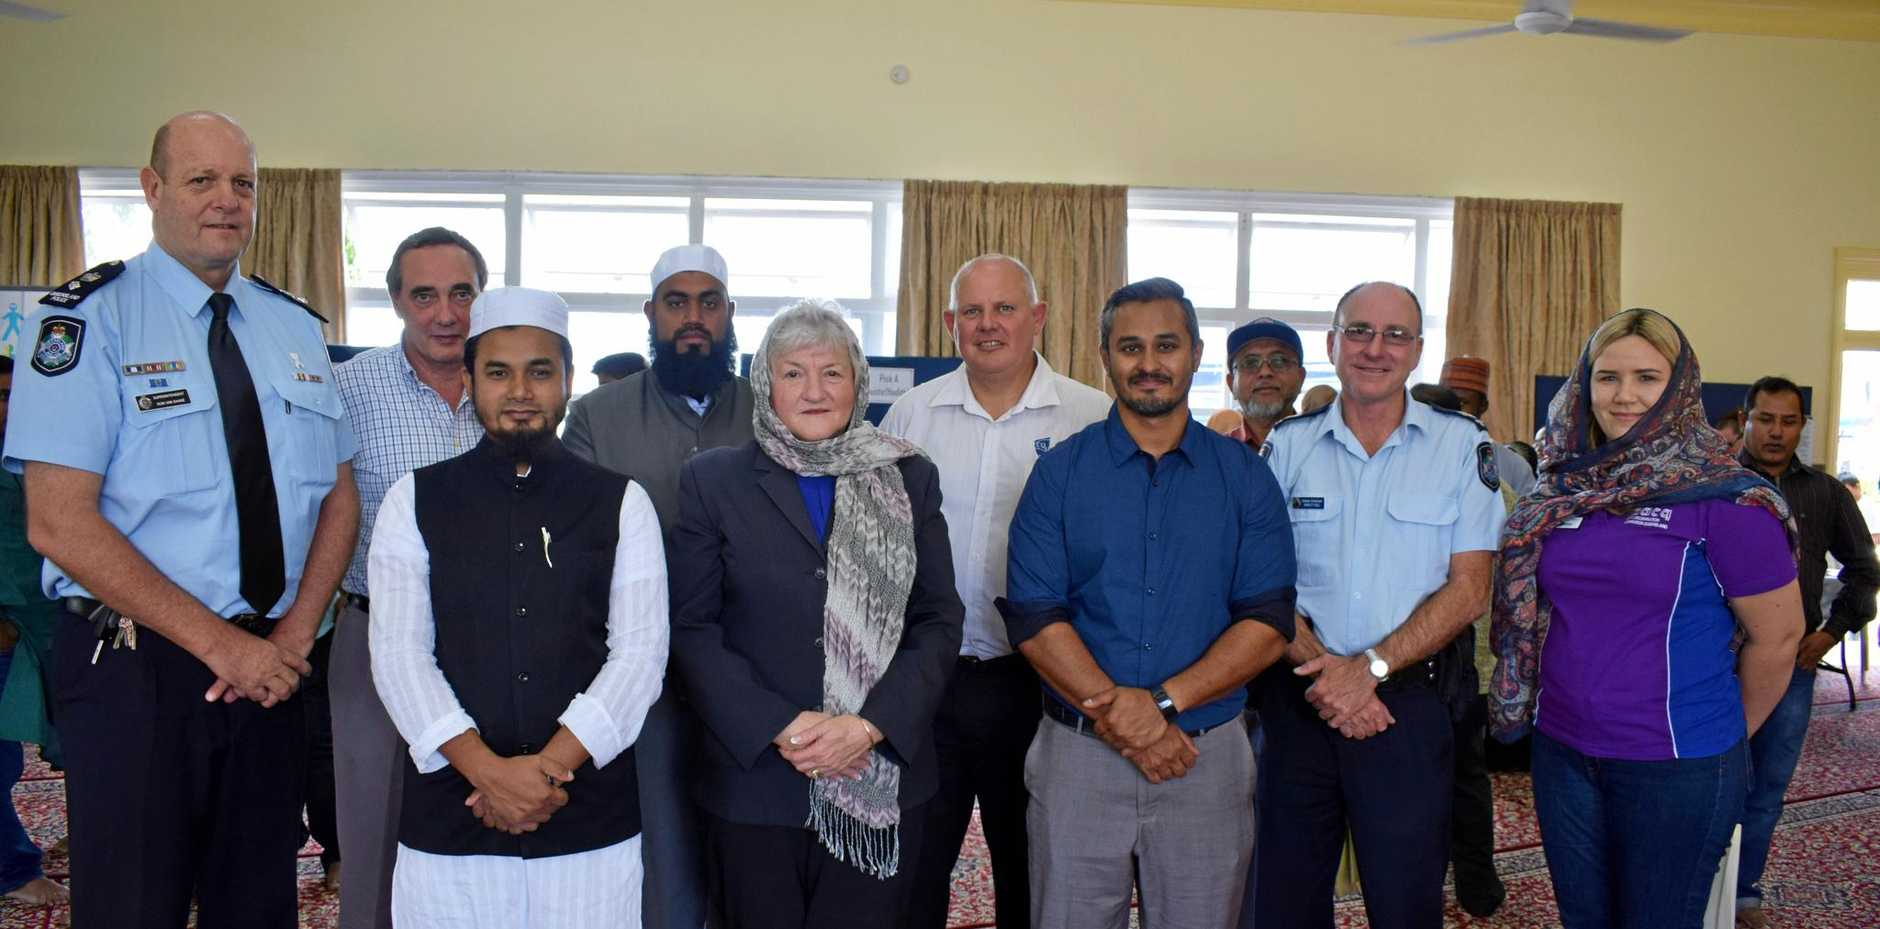 "OPEN DAY""  (back row, from left) Superintendent district officer Ron Van Saane, Father Peter Tonti, Imam Mohammed Akram Buksh, CQUniversity vice chancellor Scott Bowman, Senior Sergeant Ashley Hull. Front: Mojib Ullah, Cr Rose Swadling, Binil Kattiparambil and Emma Dalton."